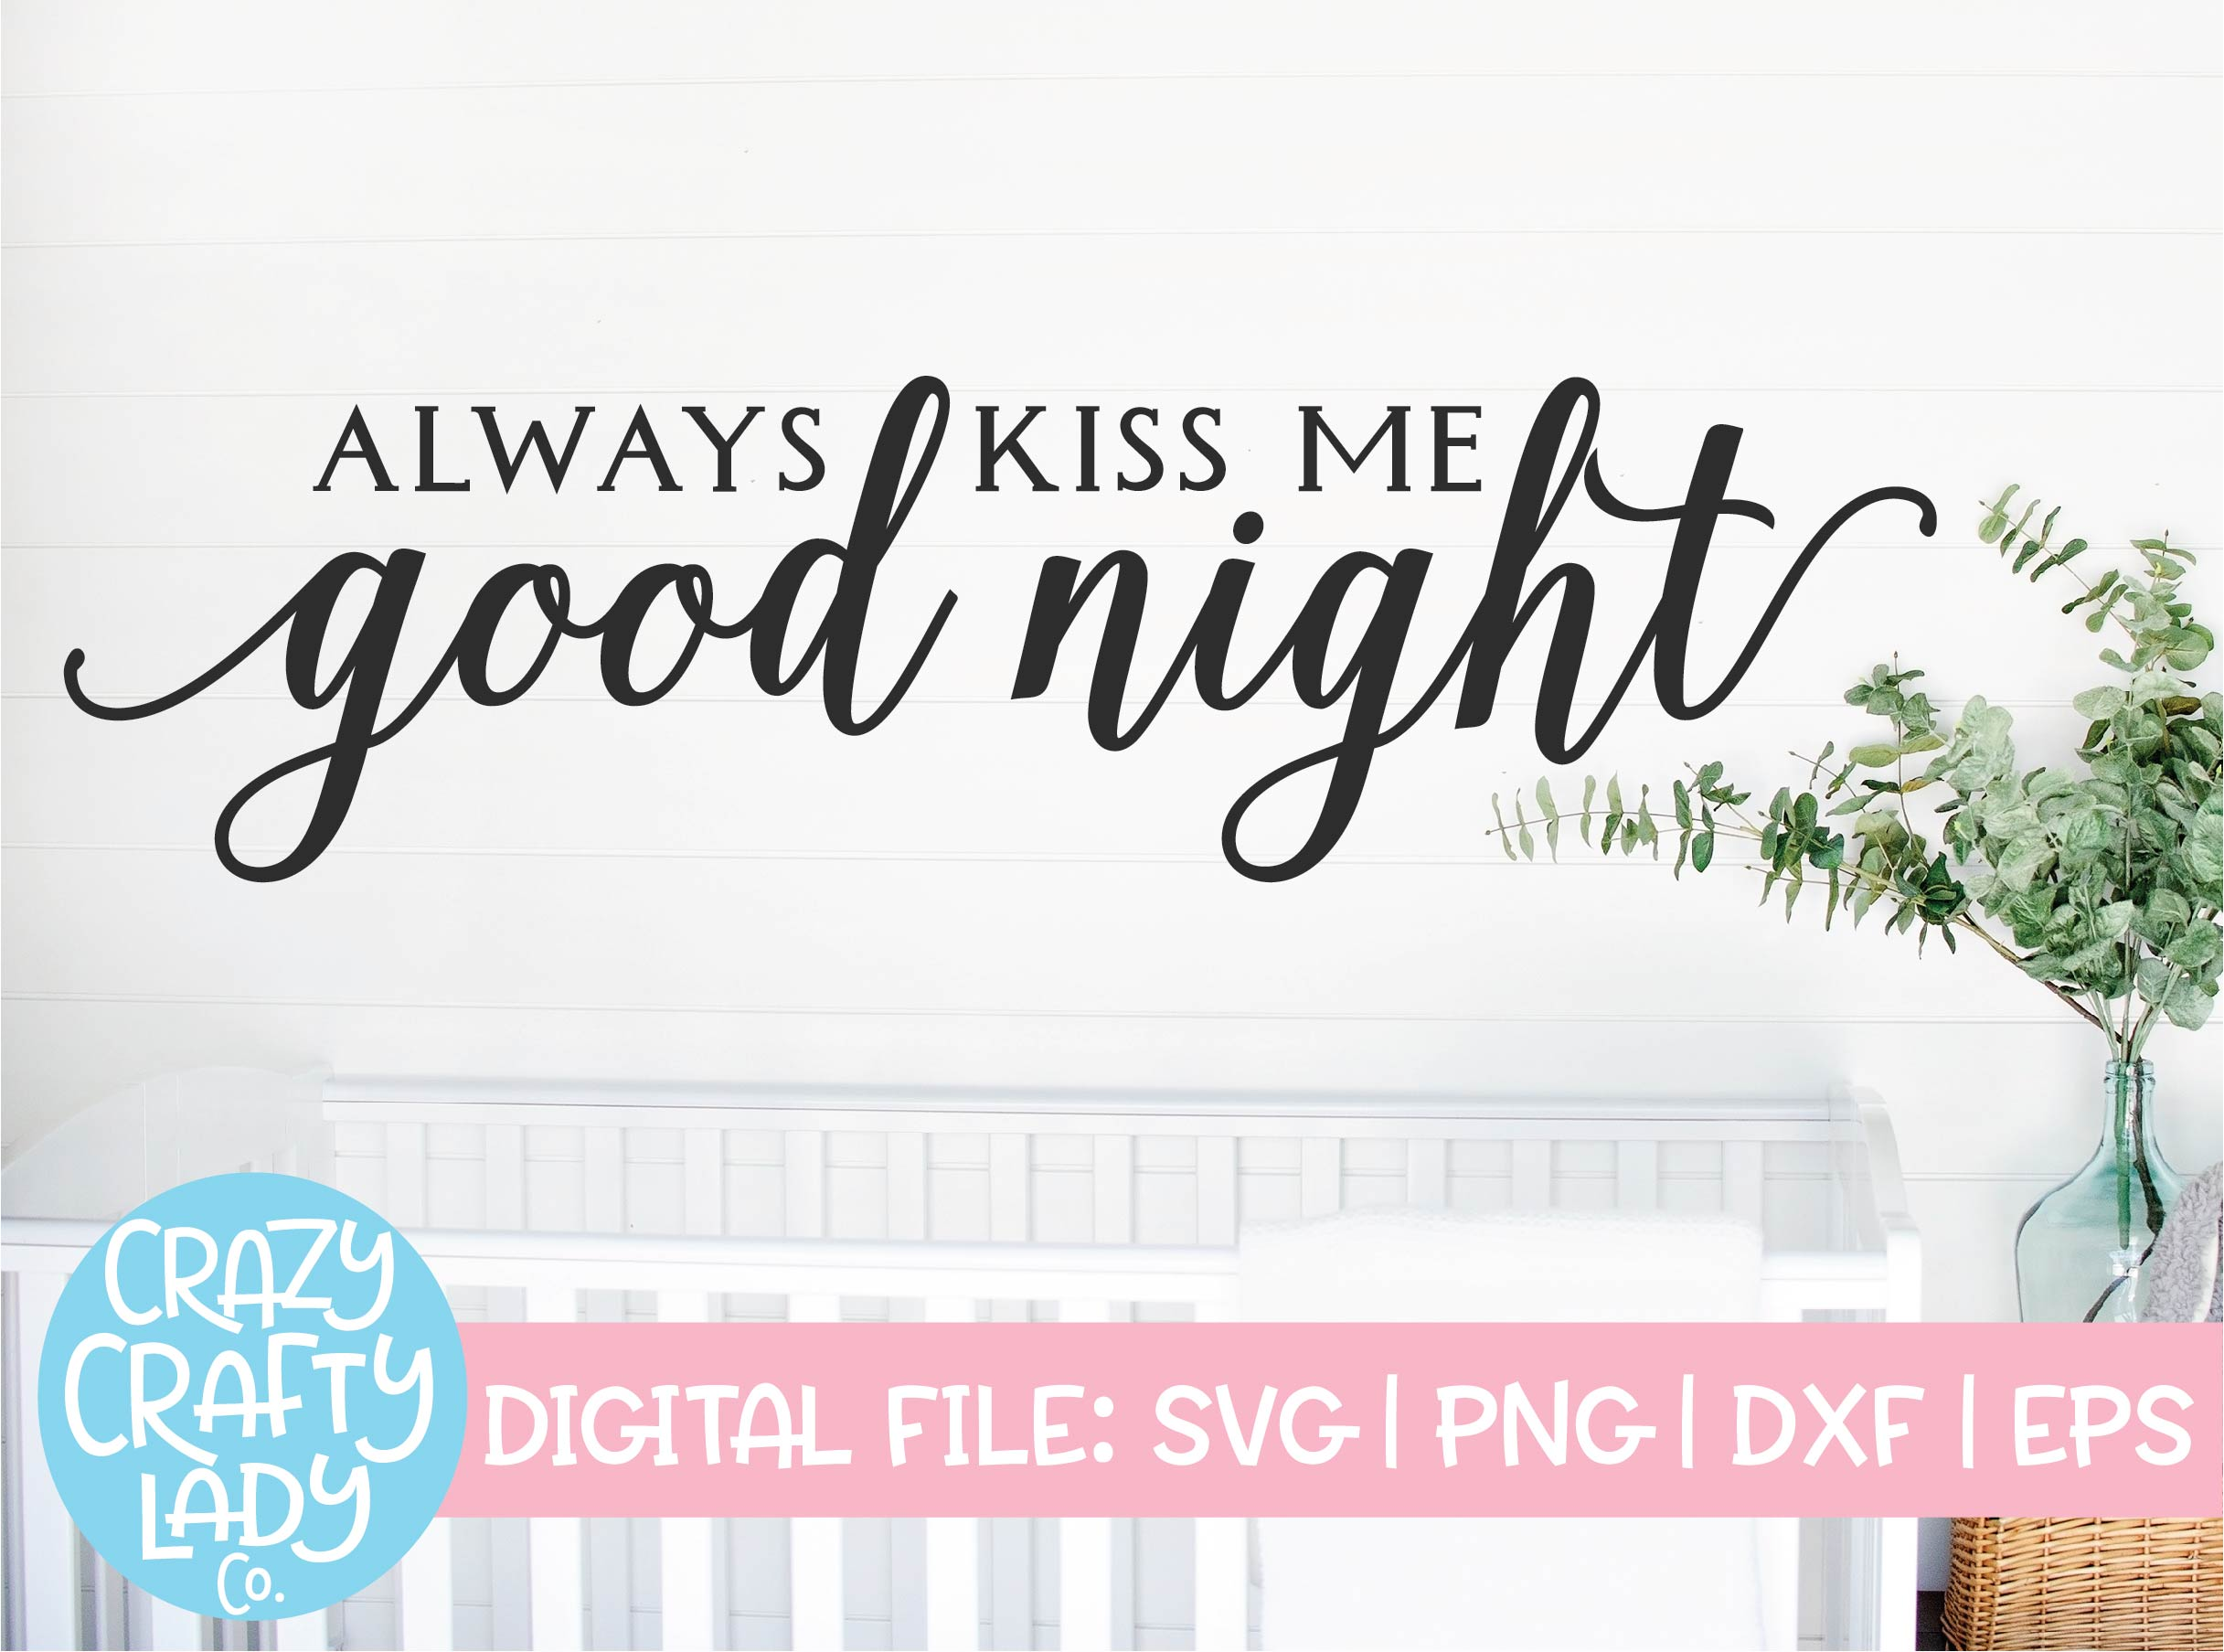 Always Kiss Me Good Night Svg Cut File Crazy Crafty Lady Co